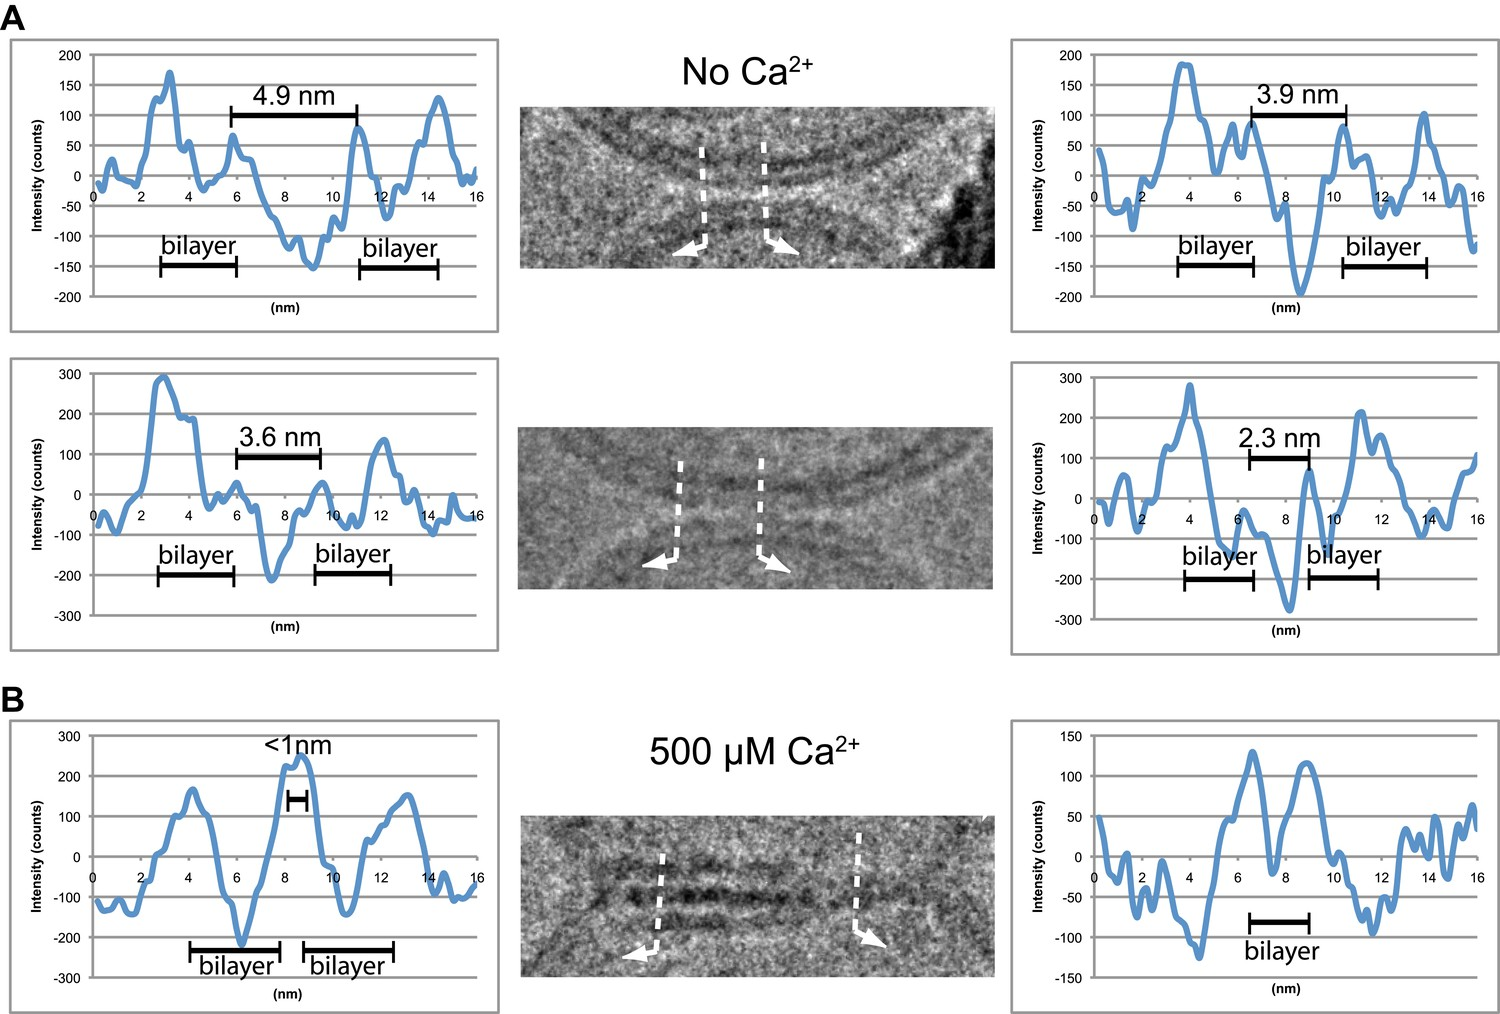 Synaptic Proteins Promote Calcium Triggered Fast Transition From Wording And 1996 Ford F 150 Fuse Box Diagram Image Density Profile Analysis Of Selected Vesiclevesicle Interfaces A Two Representative Point Contacts Between